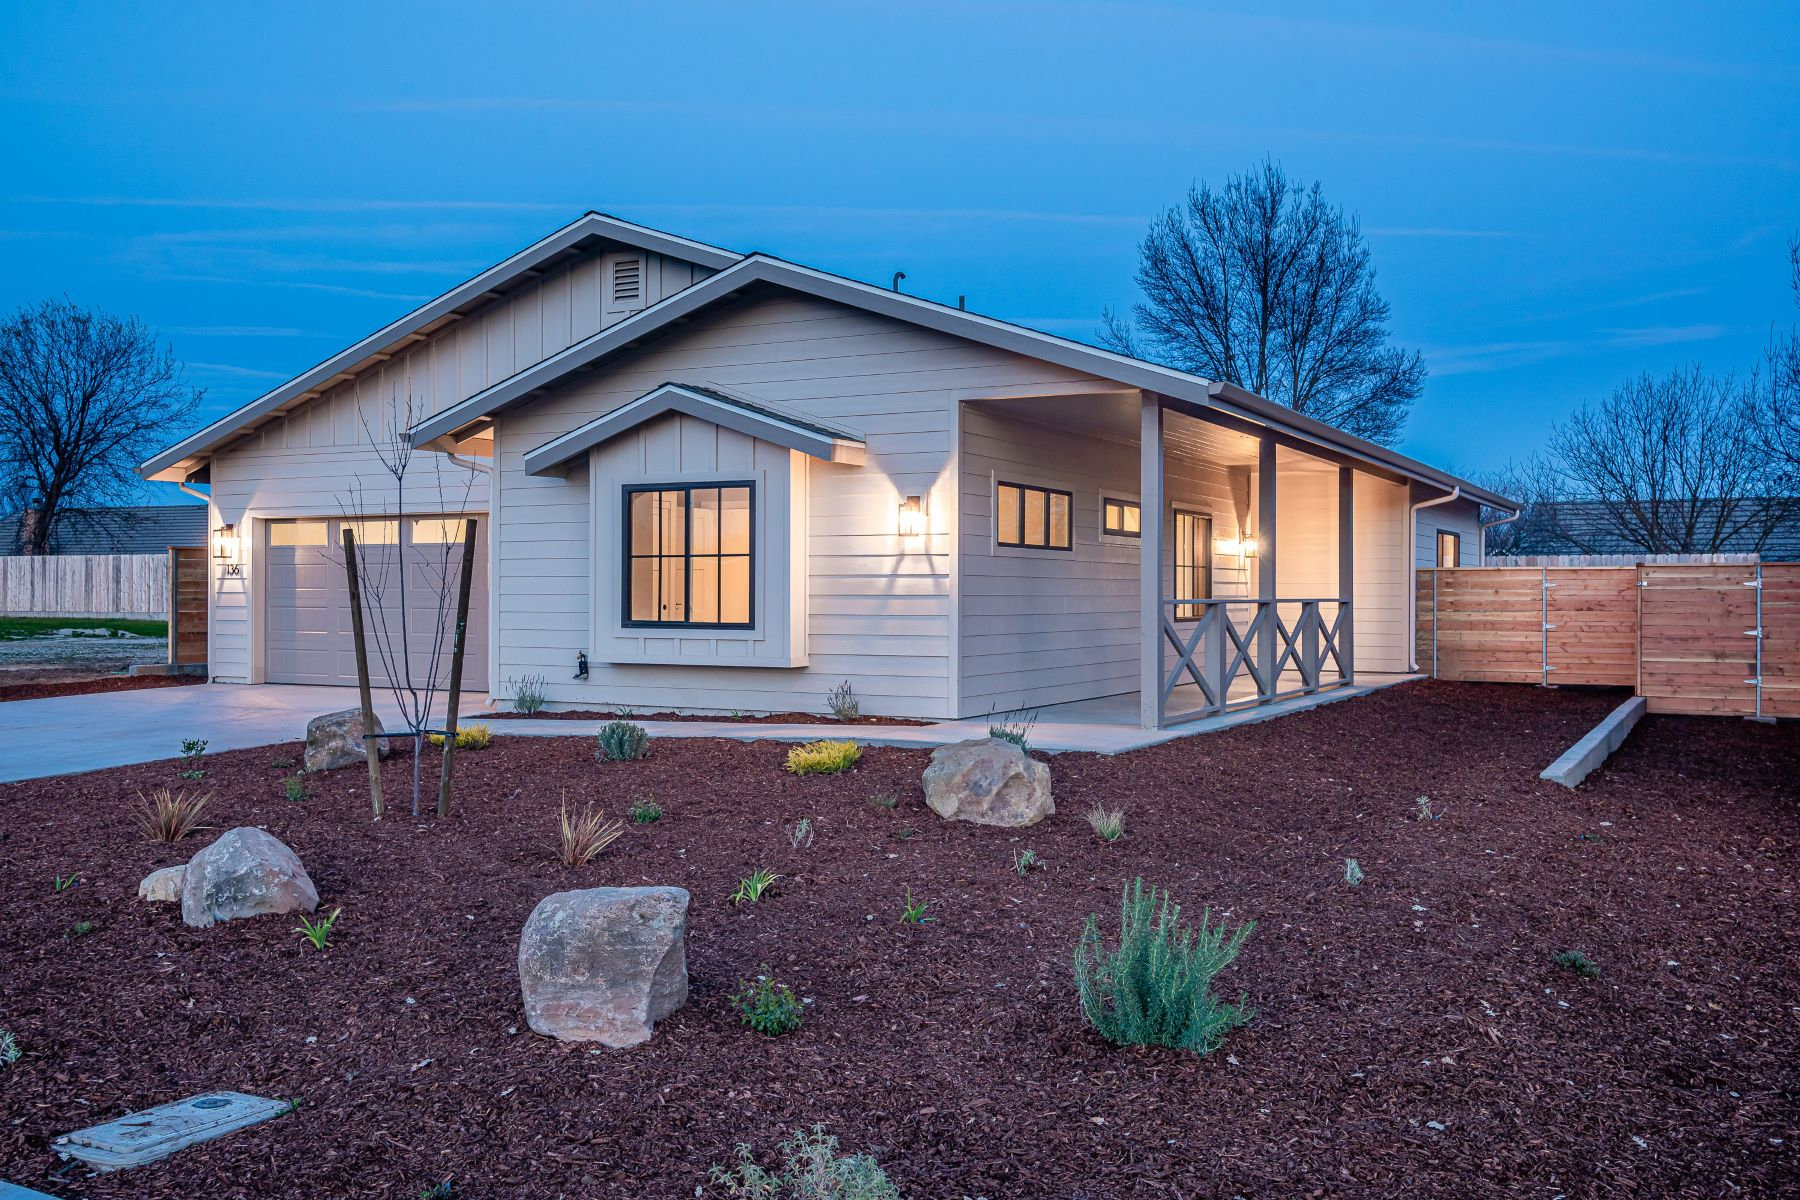 Single Family Homes for Sale at Brand New Ranch Style Home 136 Rowan Way Templeton, California 93465 United States